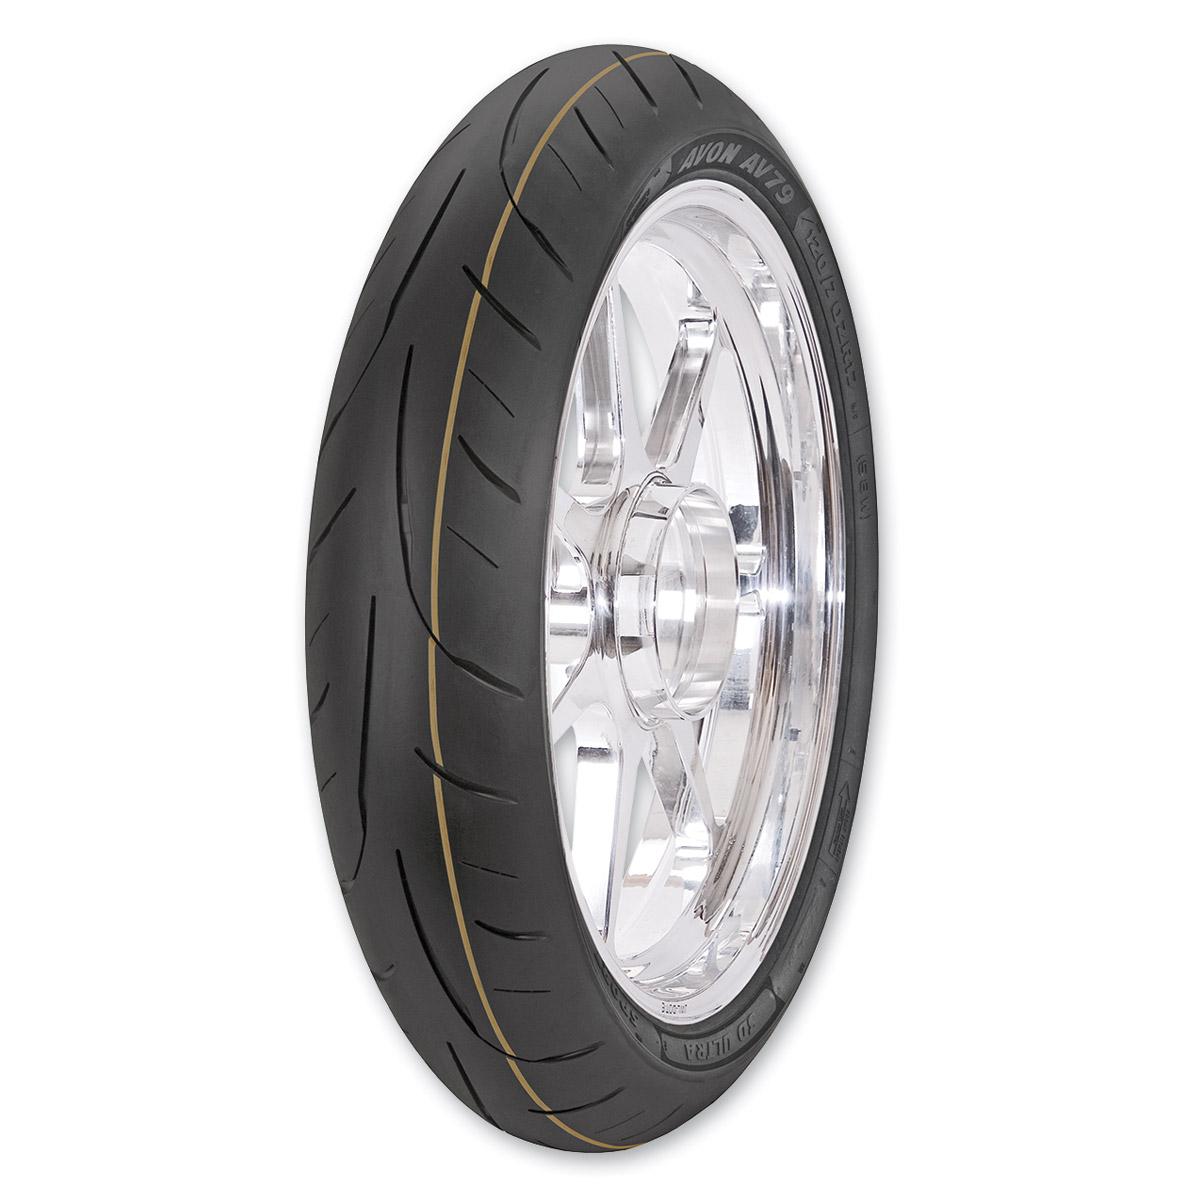 Avon AV79 3D Ultra SuperSport 120/70ZR17 Front Tire